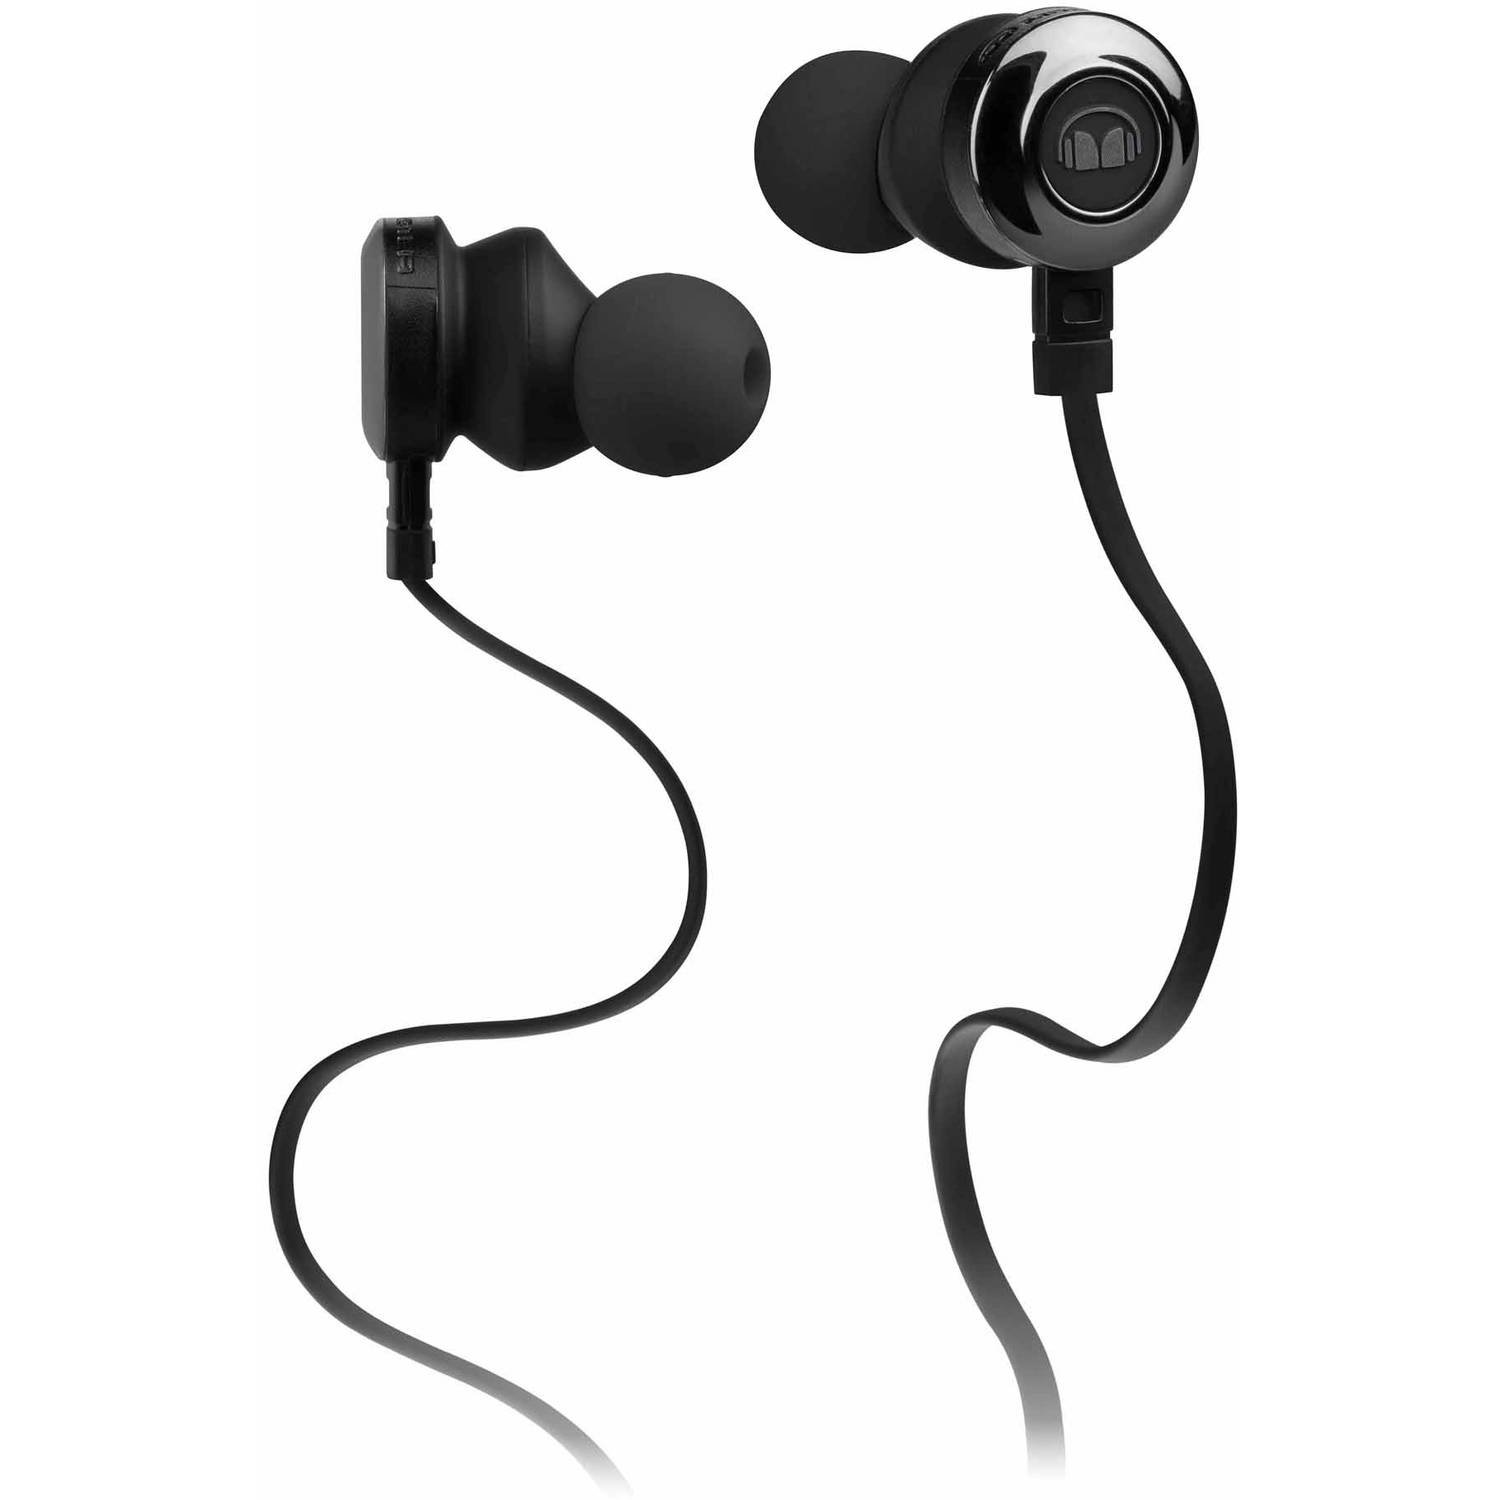 ClarityHD High-Performance Earbuds Review